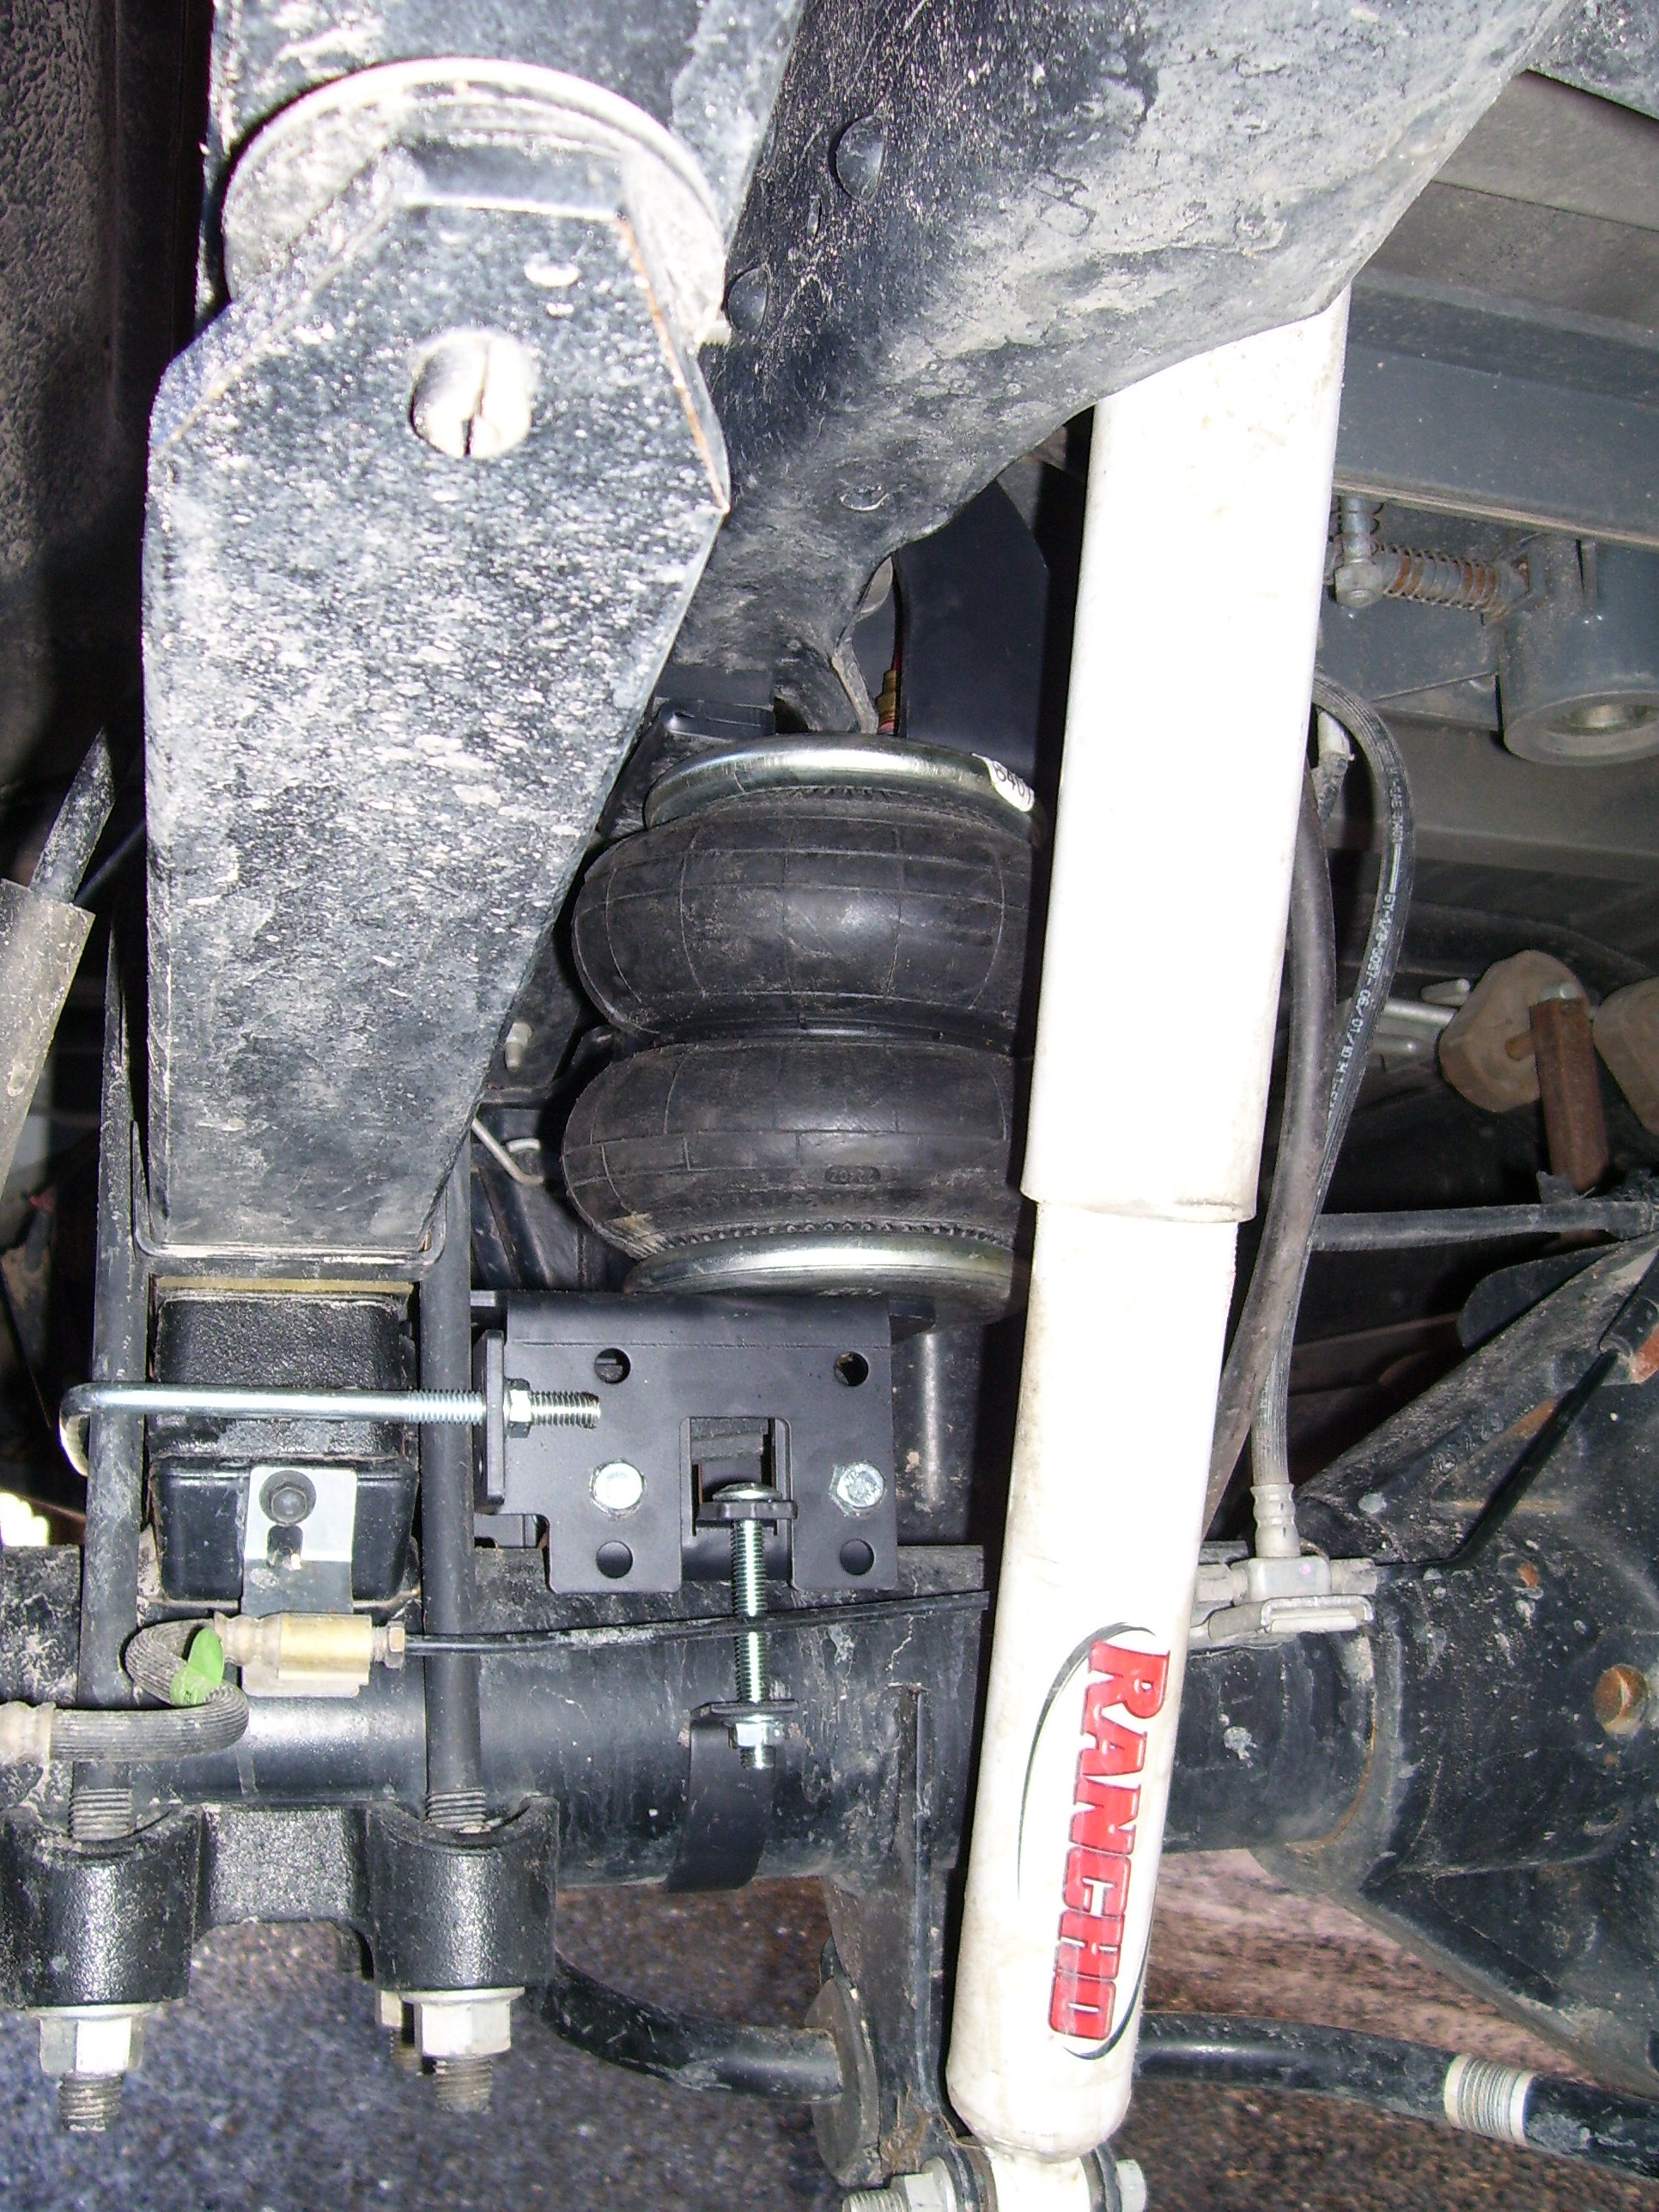 2 Ball Hitch >> Air Bags with B&W Turnover Ball Hitch - Diesel Forum - TheDieselStop.com